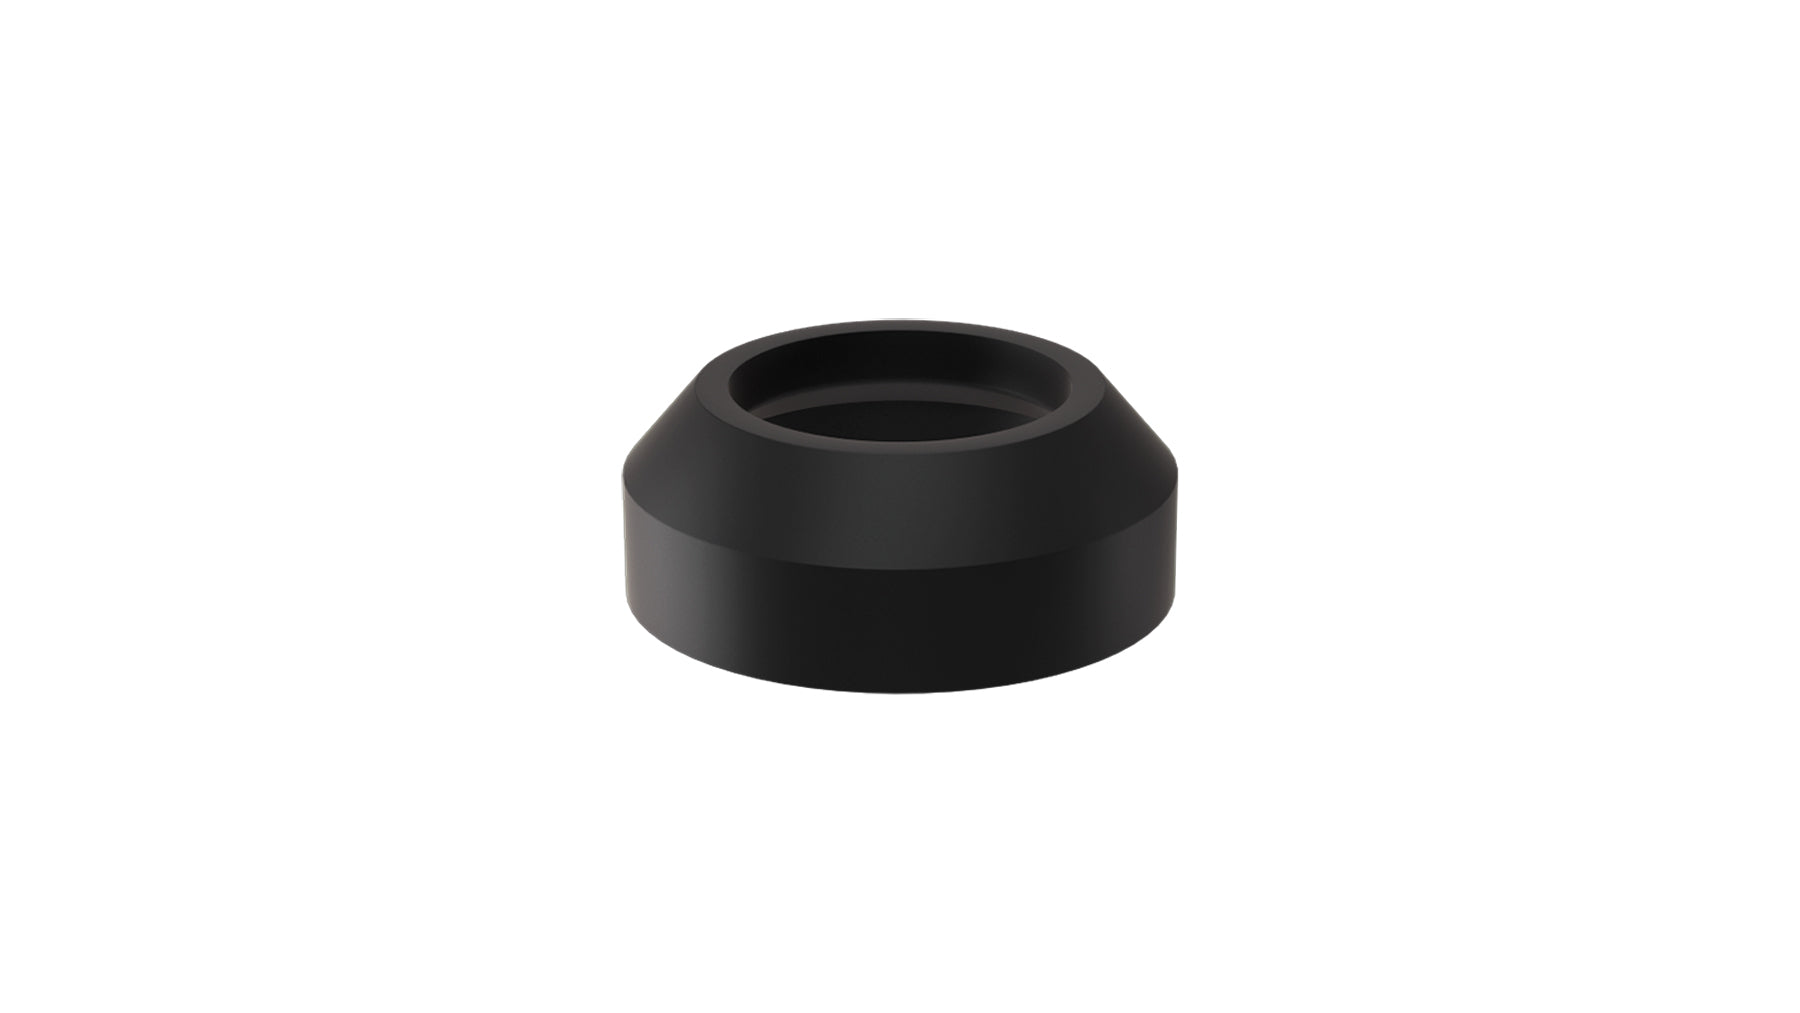 Adapter Ring for SL-1800